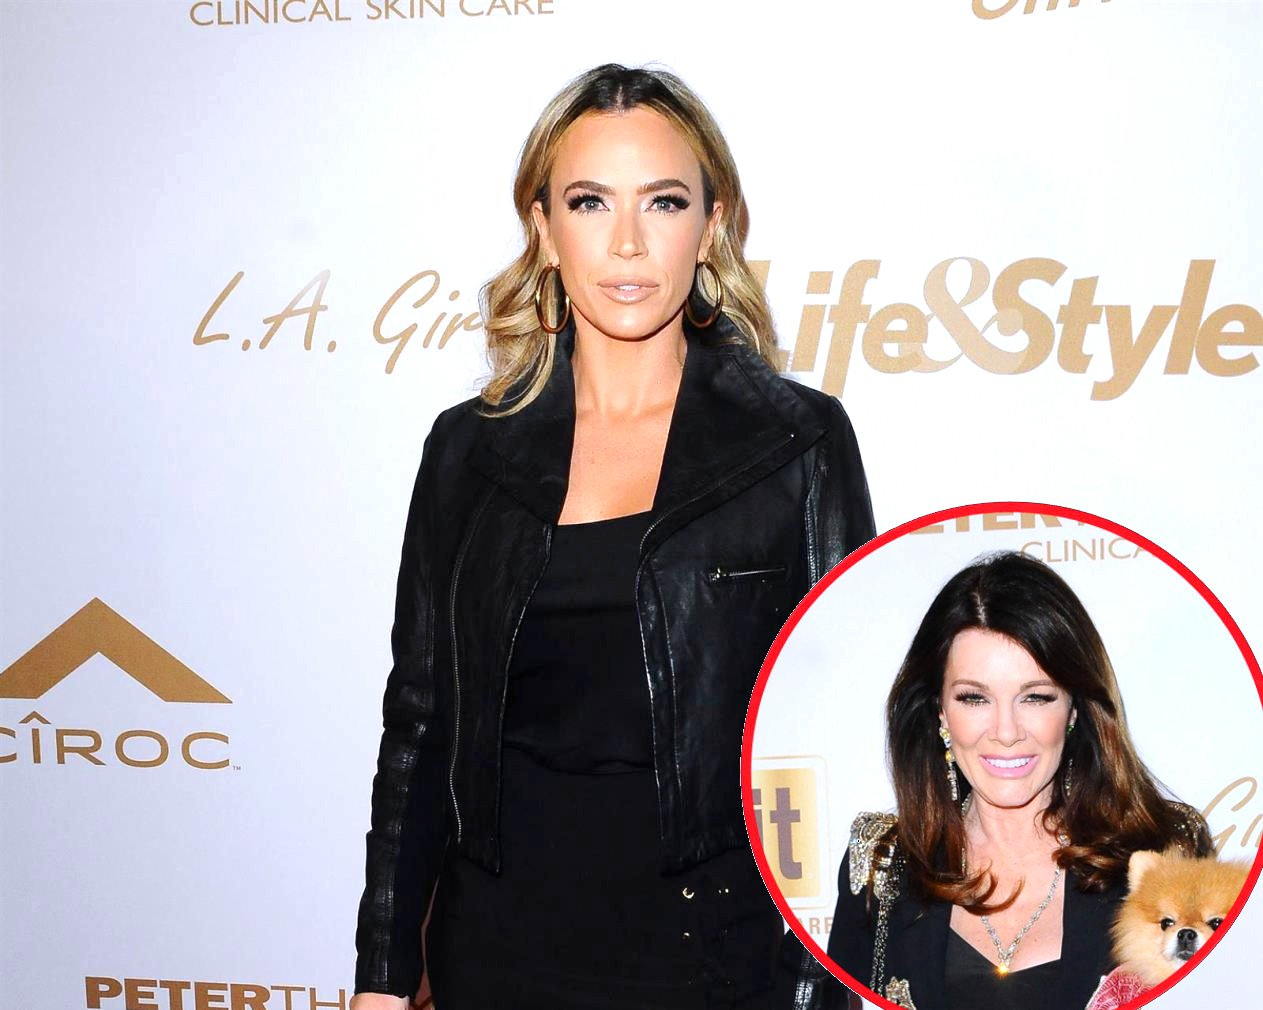 Teddi Mellencamp Questions Lisa Vanderpump's 'Grieving' on RHOBH